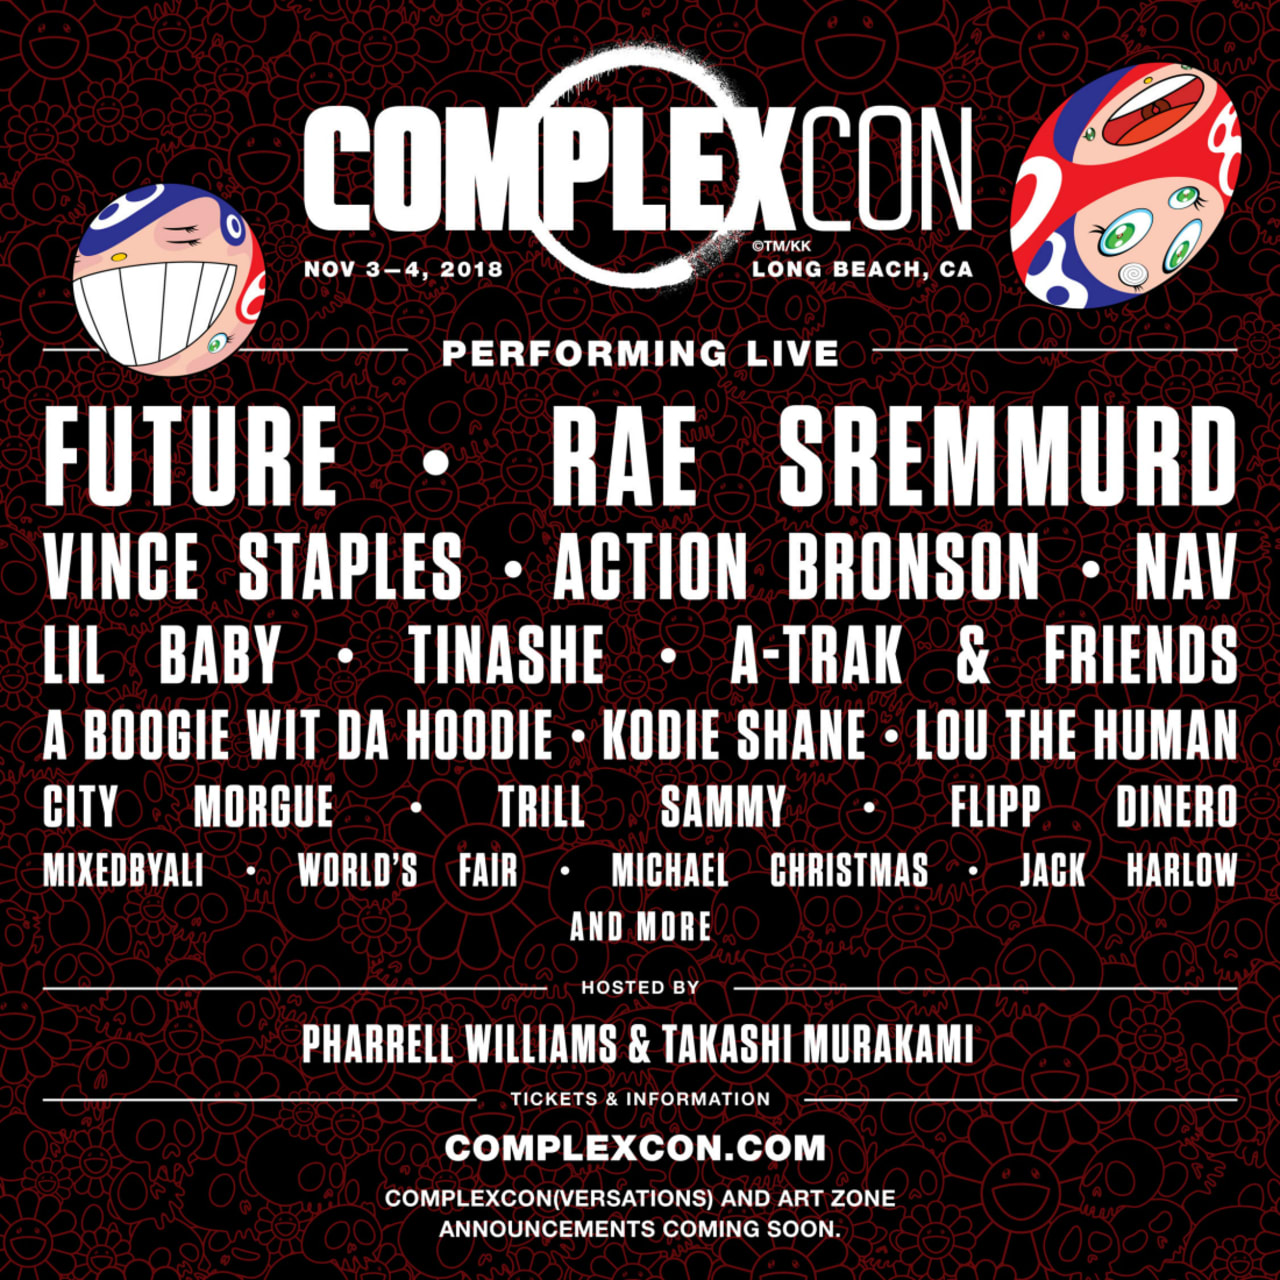 Future, Rae Sremmurd, Vince Staples, and More to Perform at ComplexCon 2018